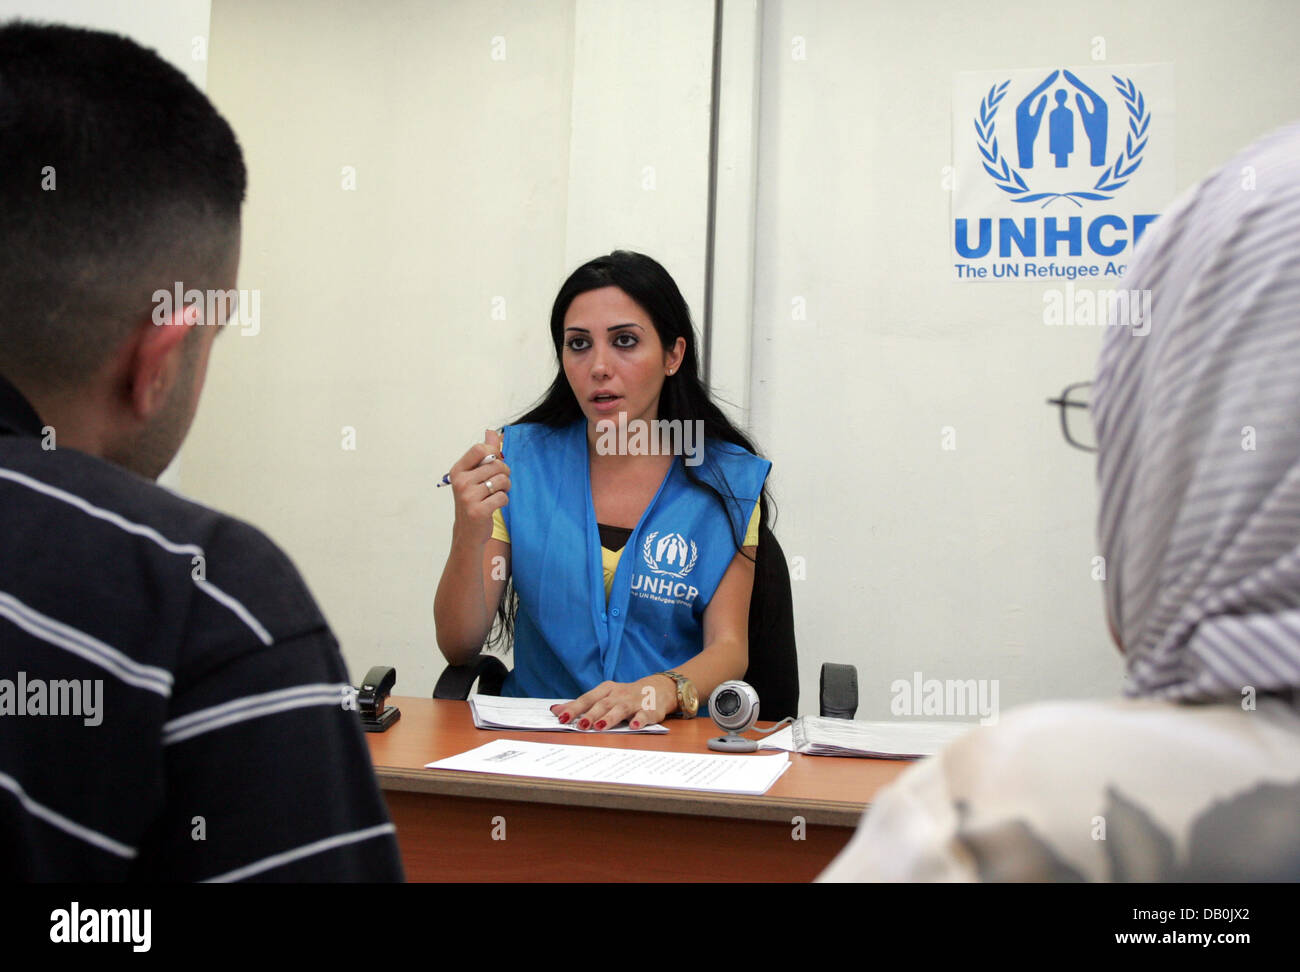 Staff of the UN's refugee agency UNHCR registers an Iraqi refugee family in a registration office for Iraqi - Stock Image